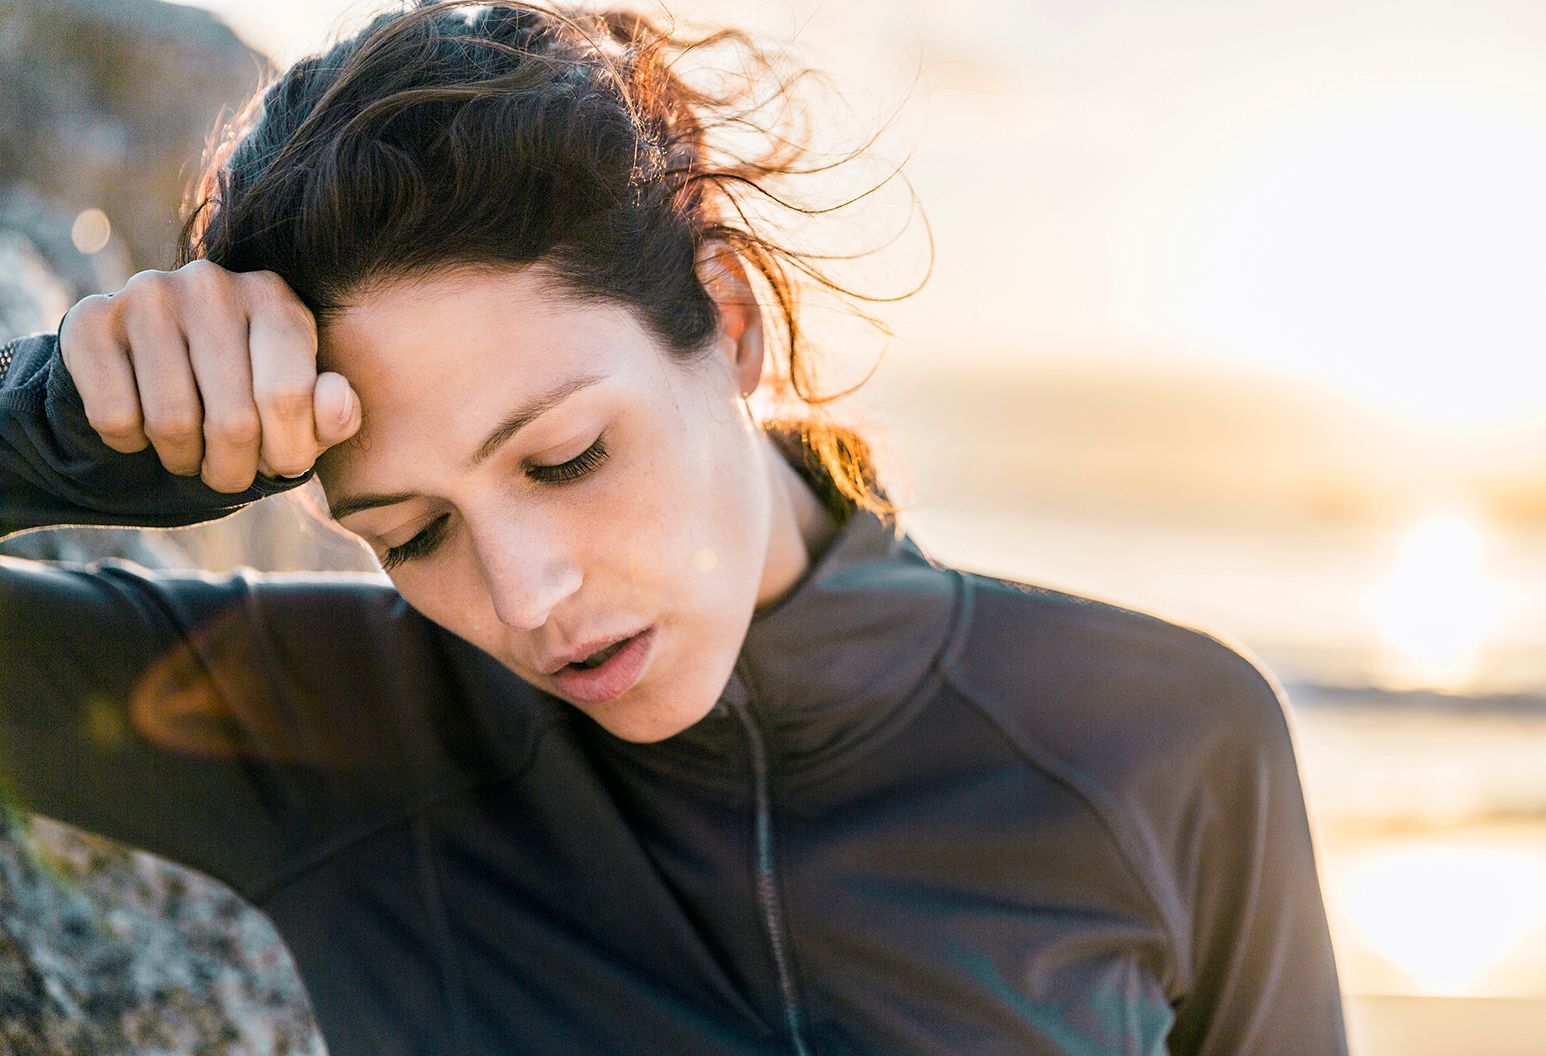 A photo of tired sporty woman looking down. Exhausted female athlete is wiping her forehead. She is wearing sportswear at beach.